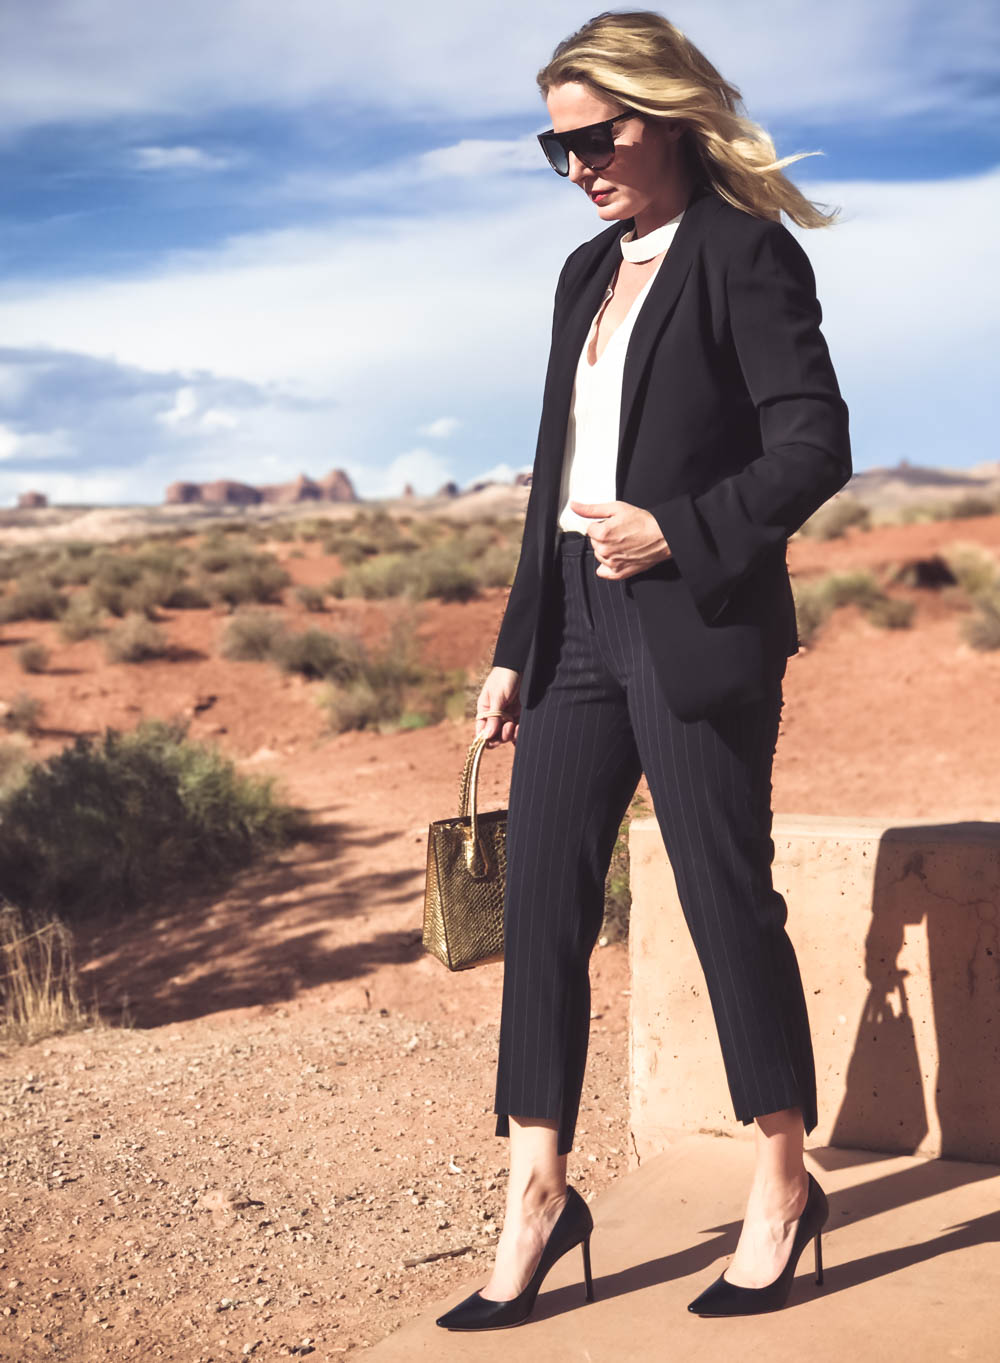 Business Casual Outfit ideas, cropped pants to work, pinstripe cropped pants with black blazer and white choker blouse with black jimmy choo pumps in Moab, Utah on fashion blogger, Erin Busbee, Busbee Style